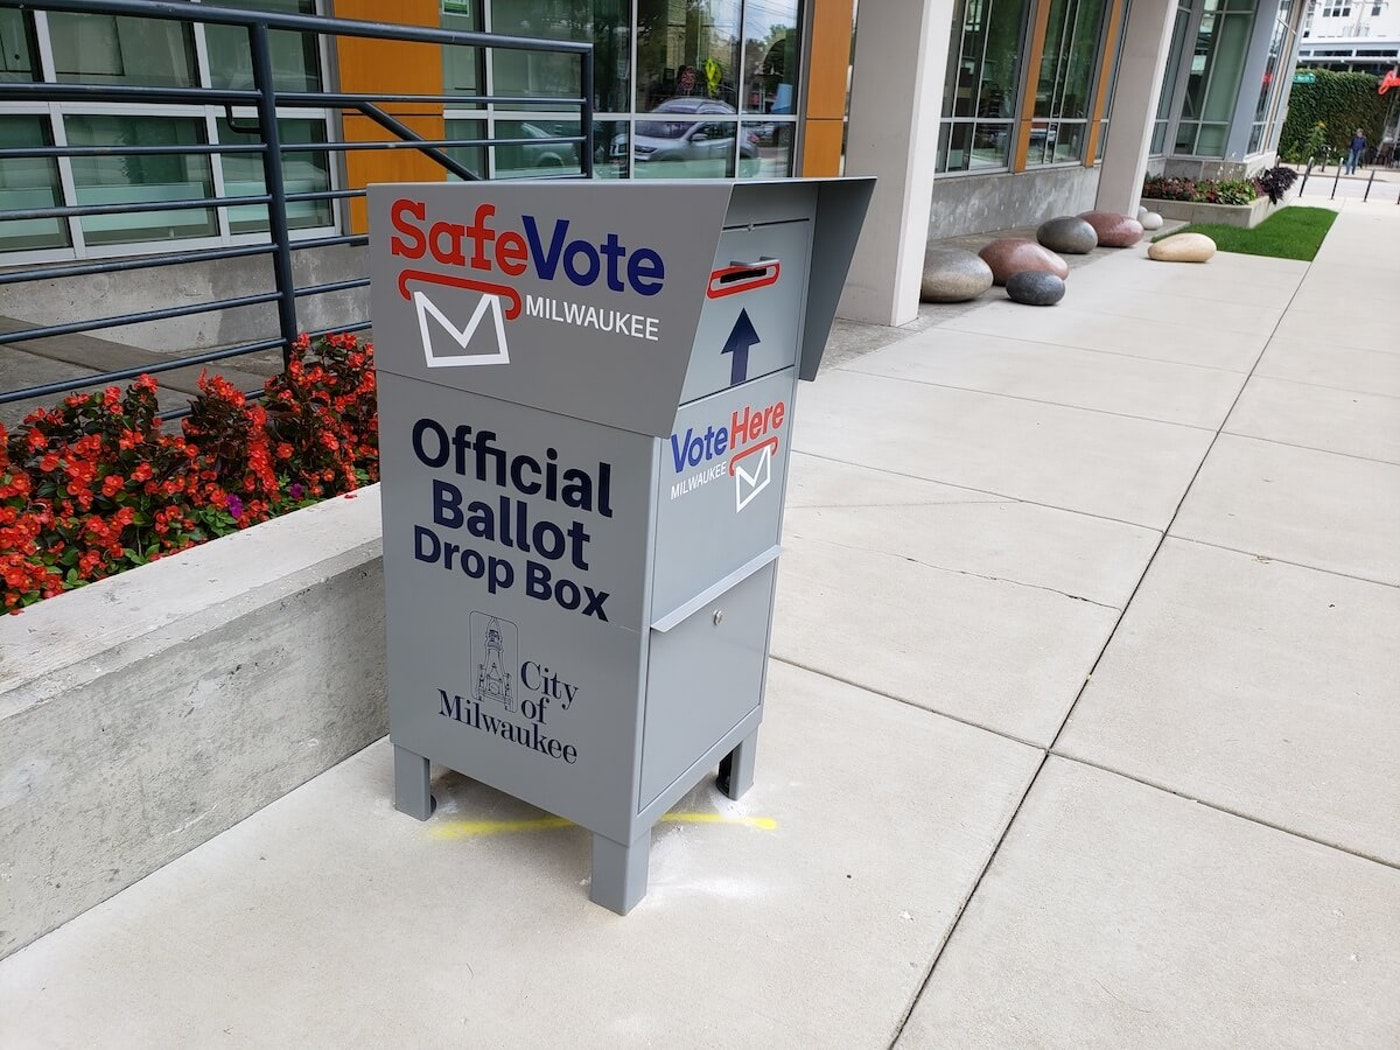 Drop boxes are designed to provide voters an alternative spot to deliver their absentee ballot, as opposed to traditional mail service. (Photo by Ethan Duran)